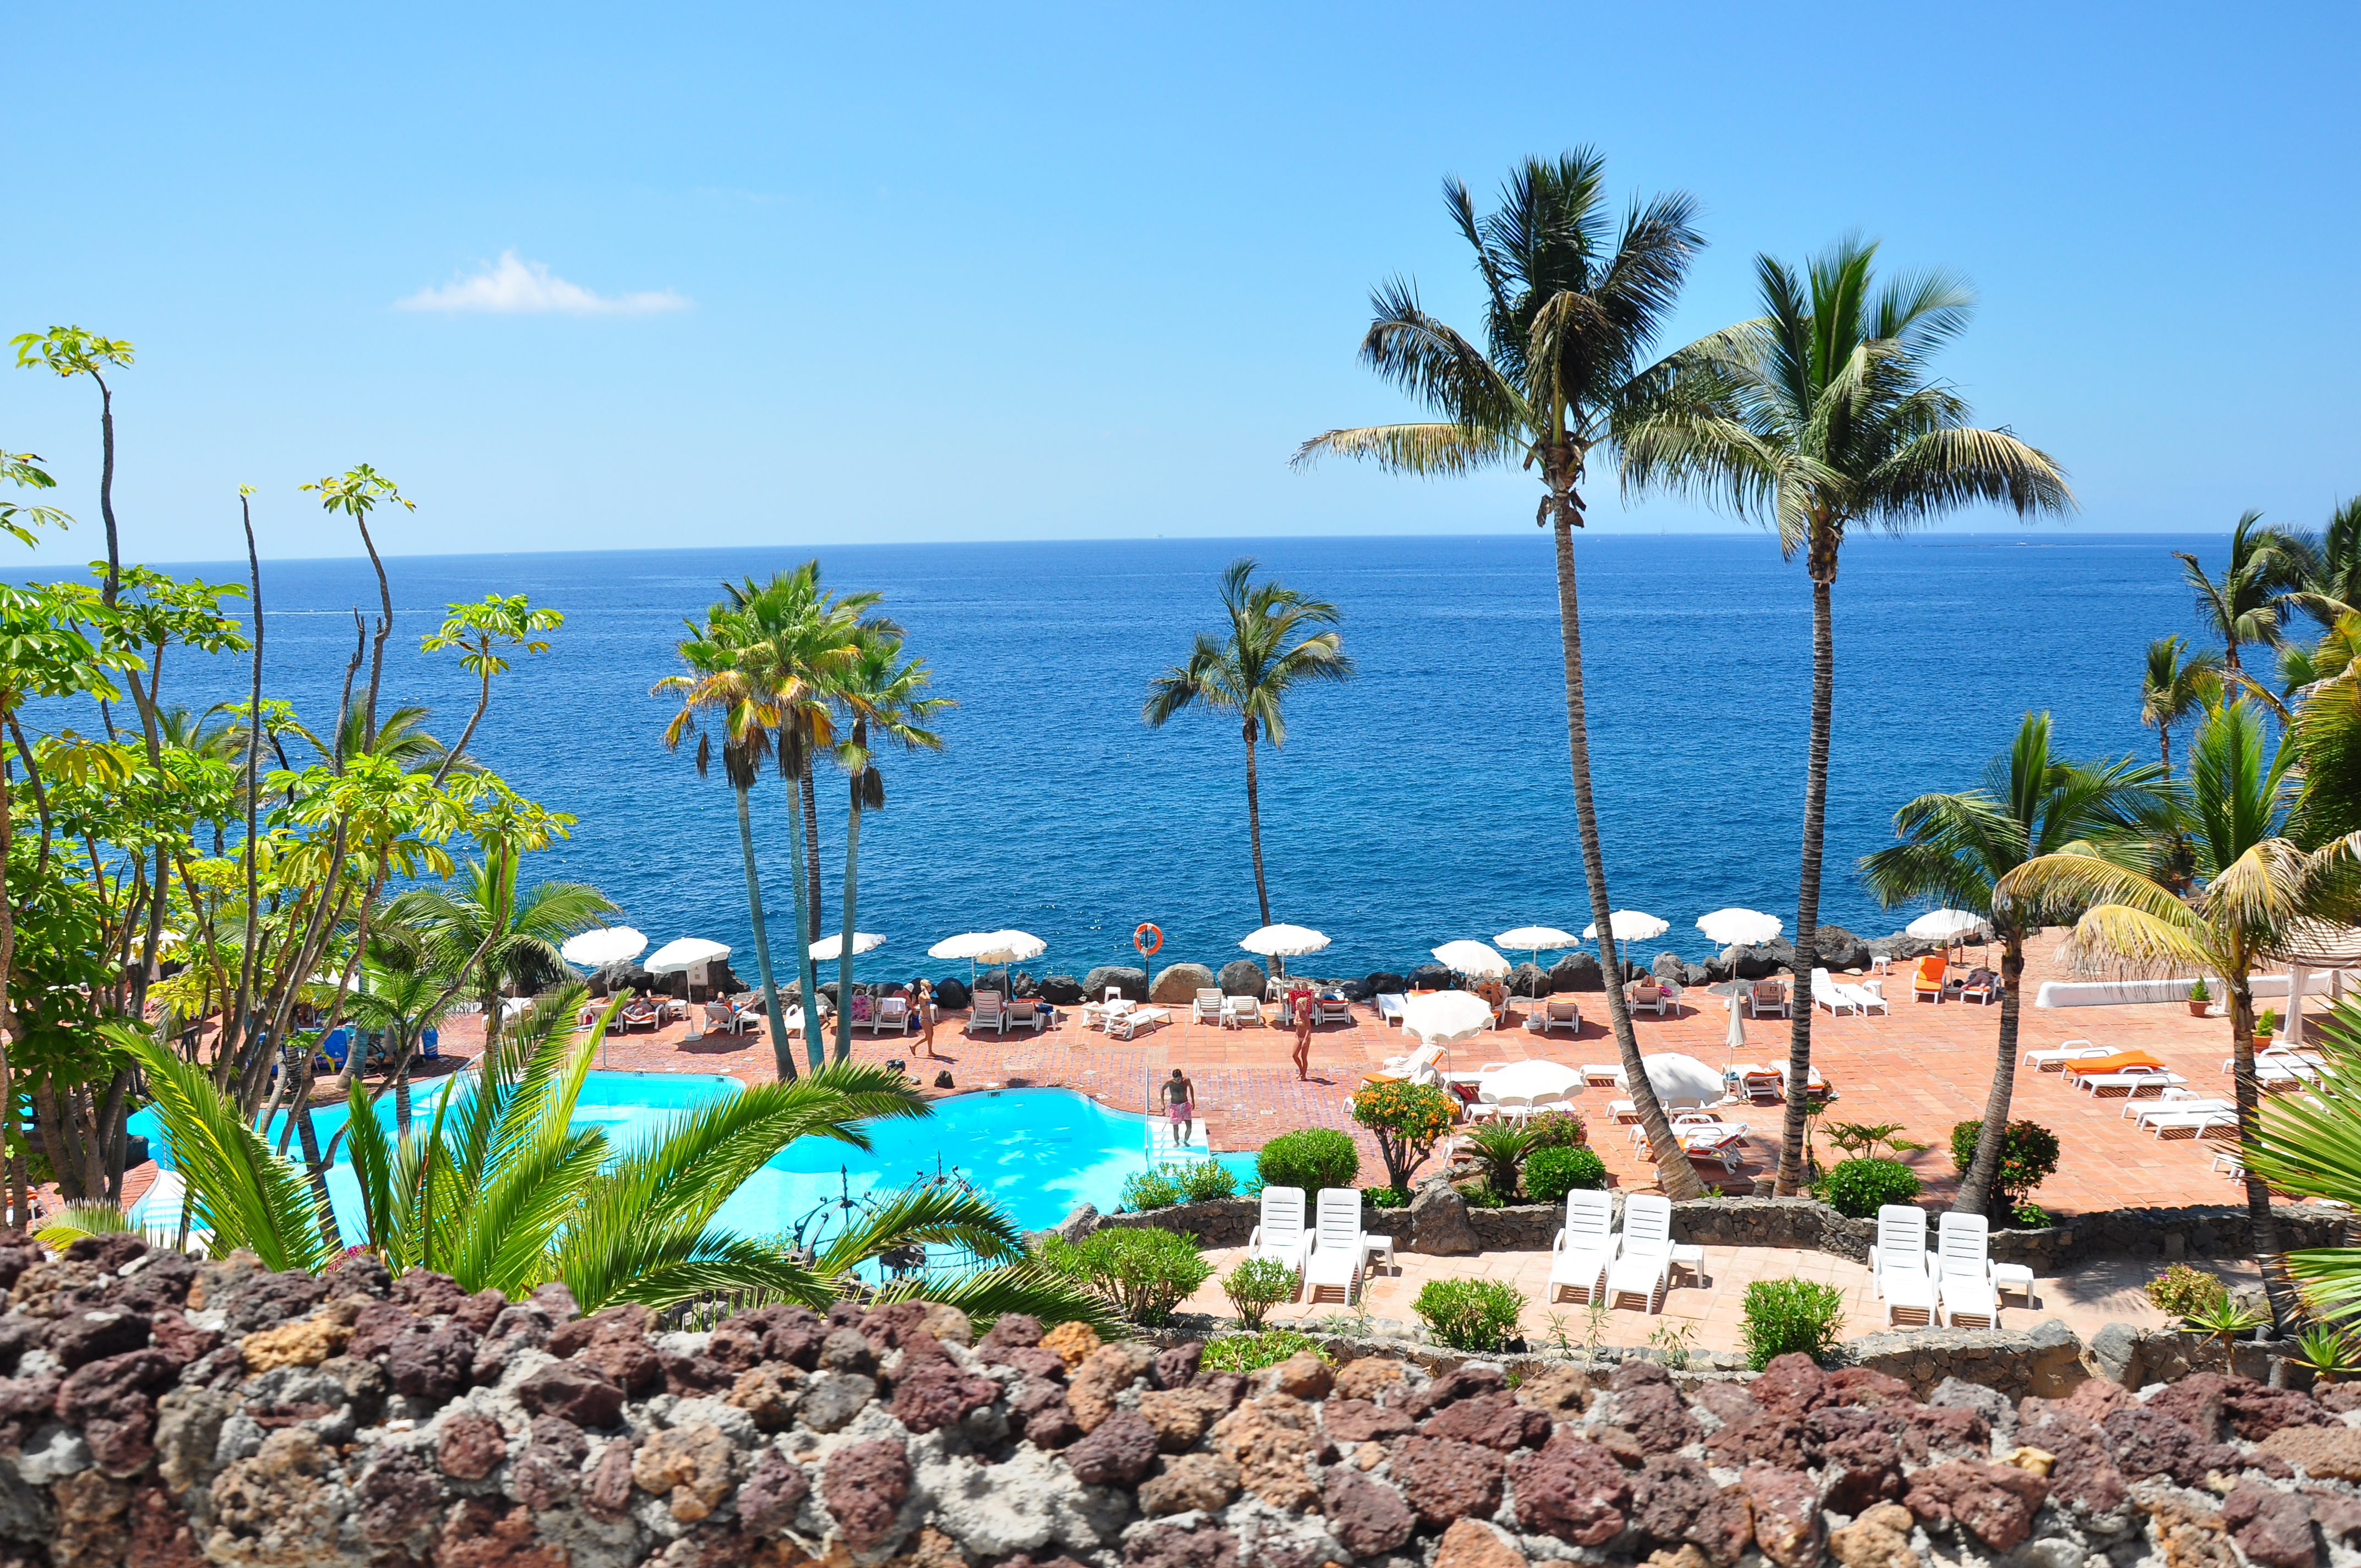 Excursii optionale mihaela anghel for Le jardin tropical tenerife